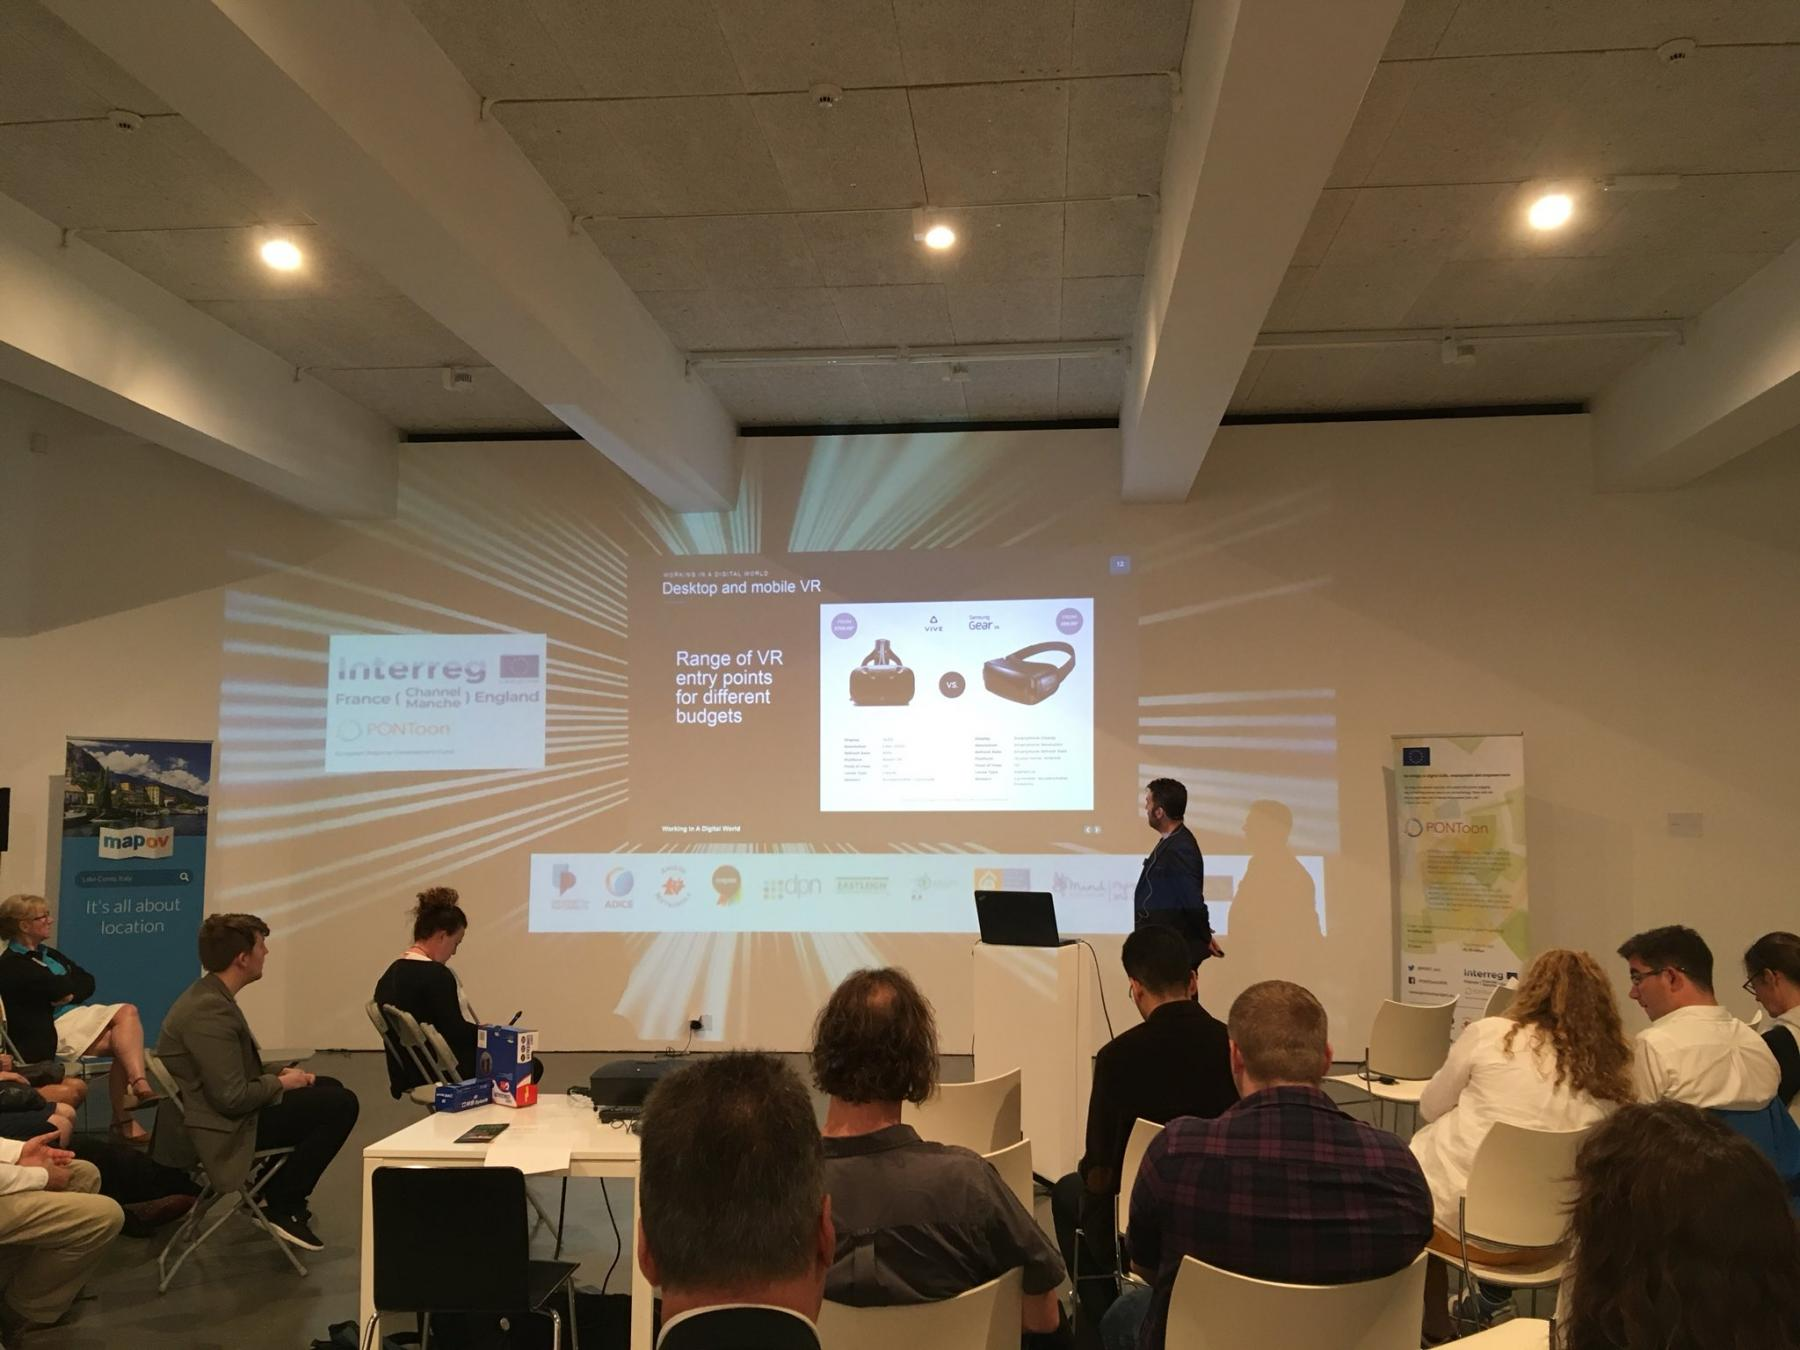 VR Cornwall's Matt Harding talks about the employment opportunities present by VR